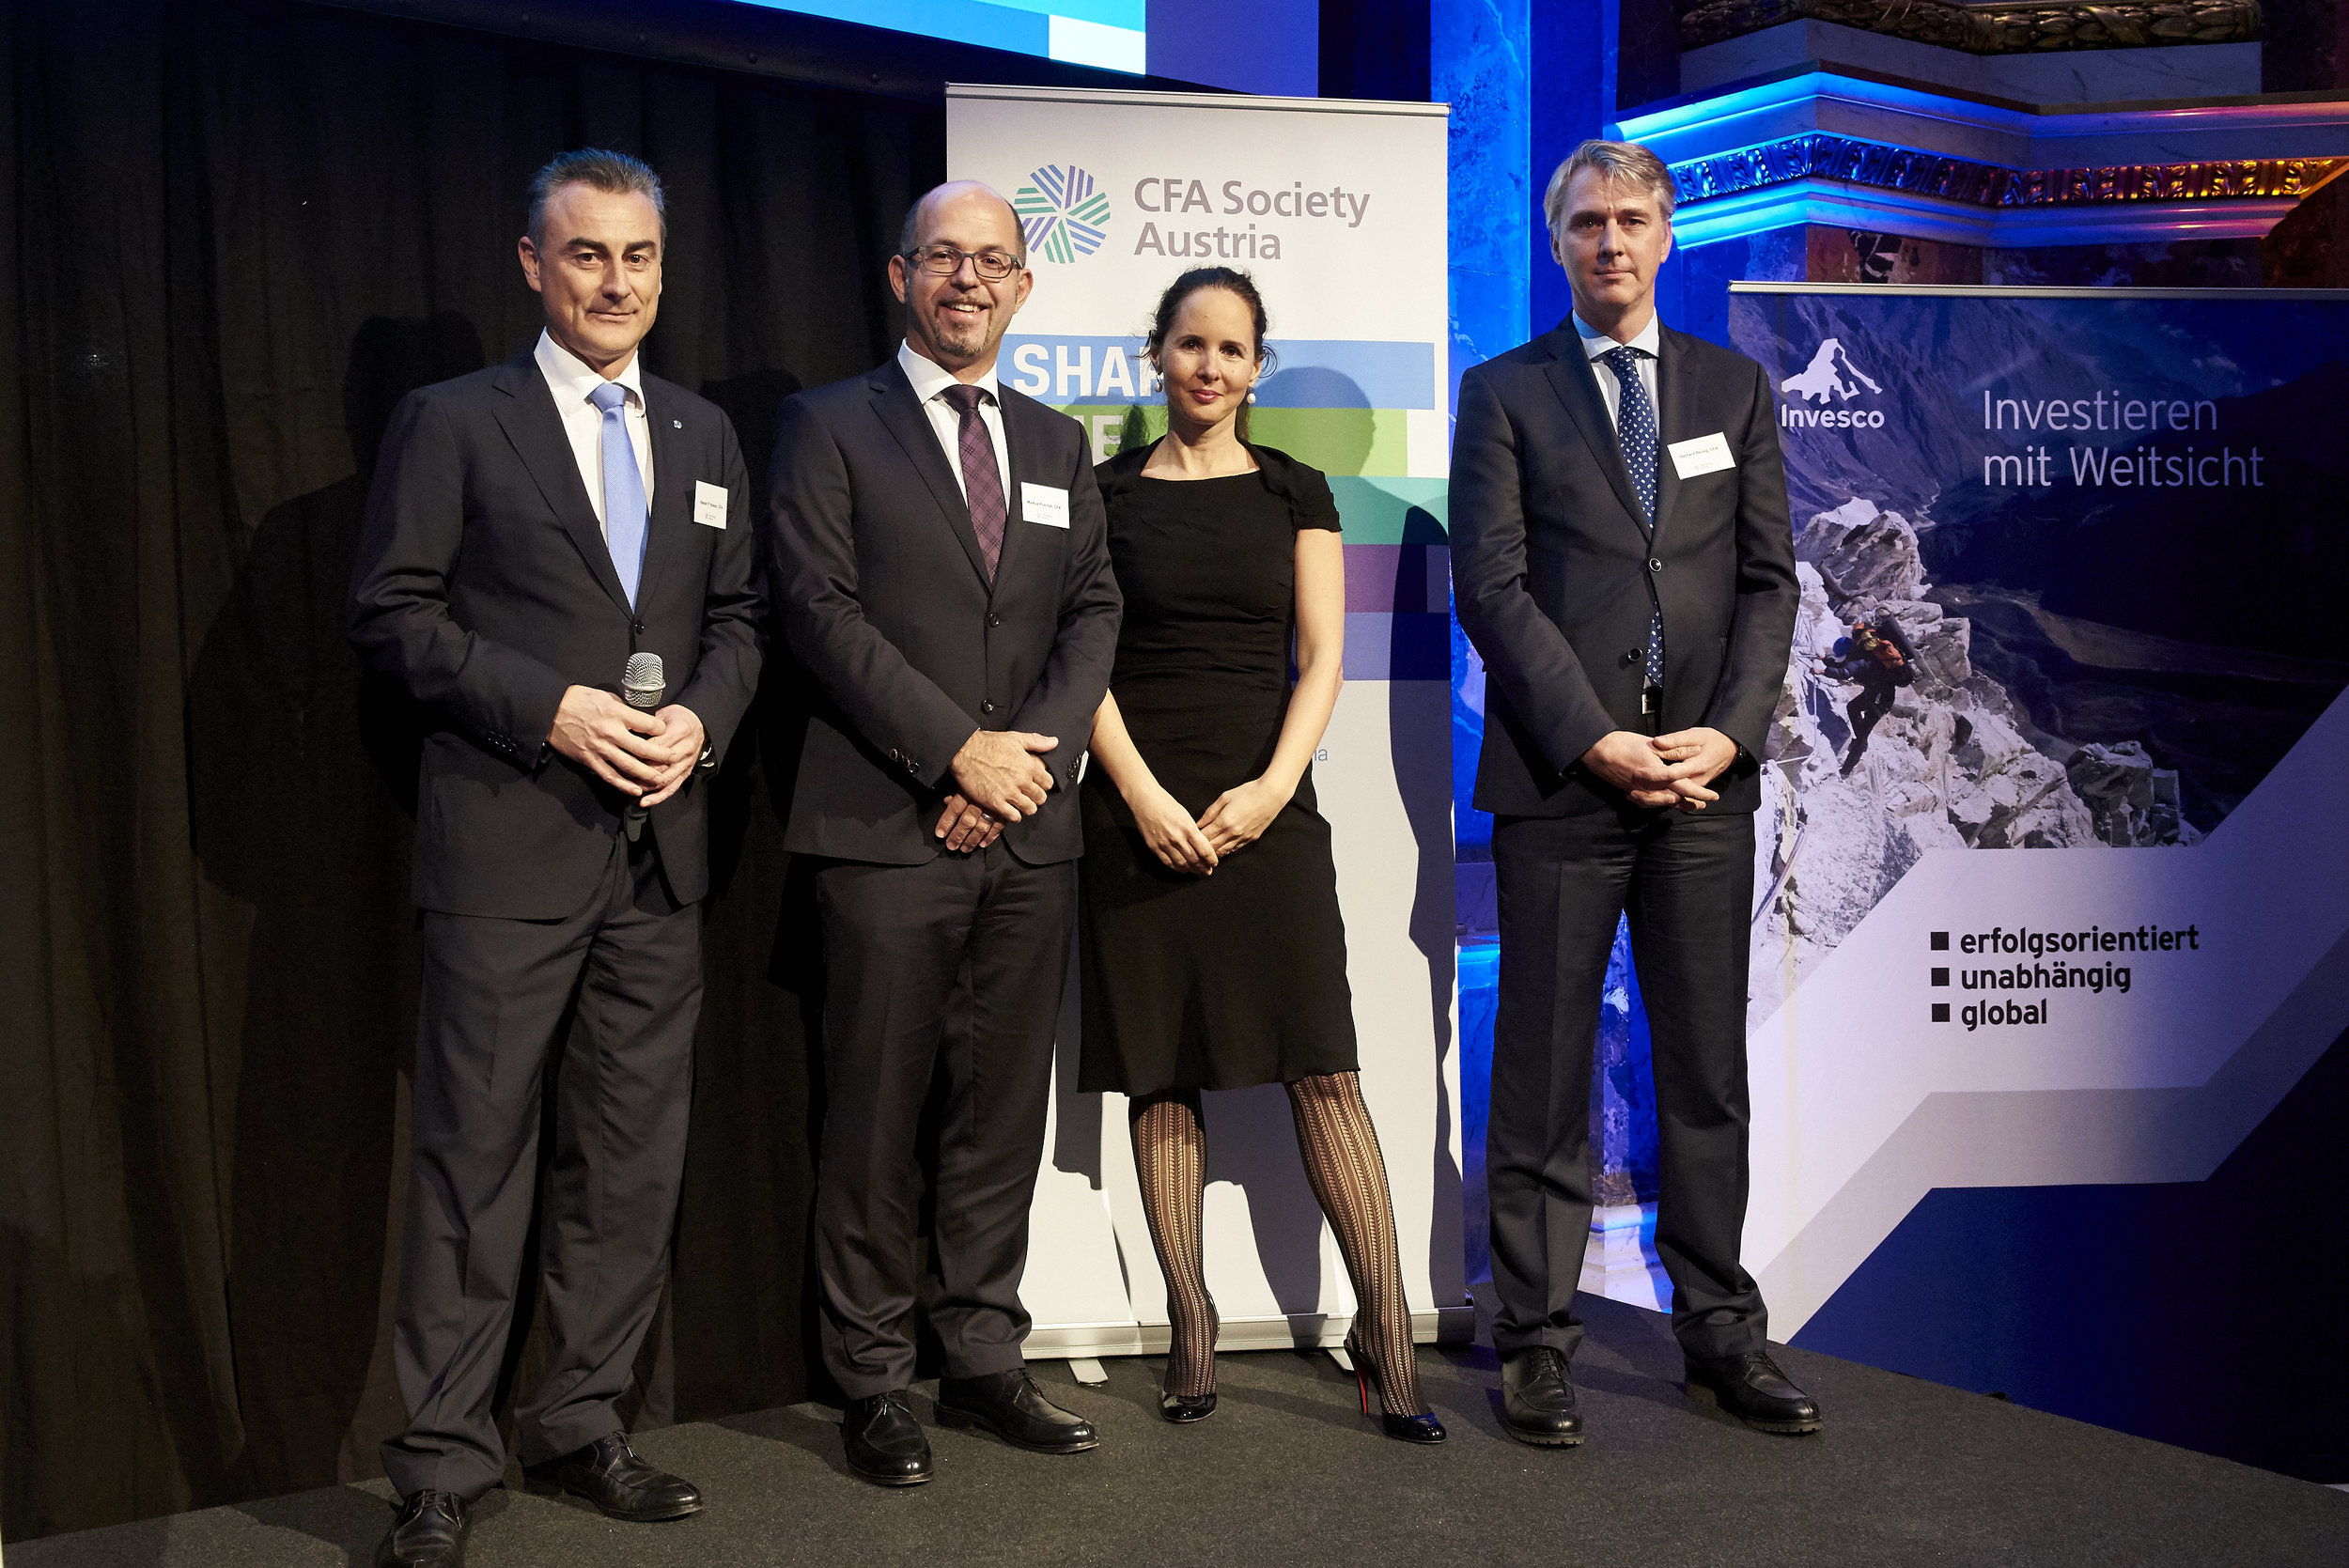 Board Members (from left to right): Harald Holzer, Markus Poscher, Karin Reschenhofer, Gerhard Beulig